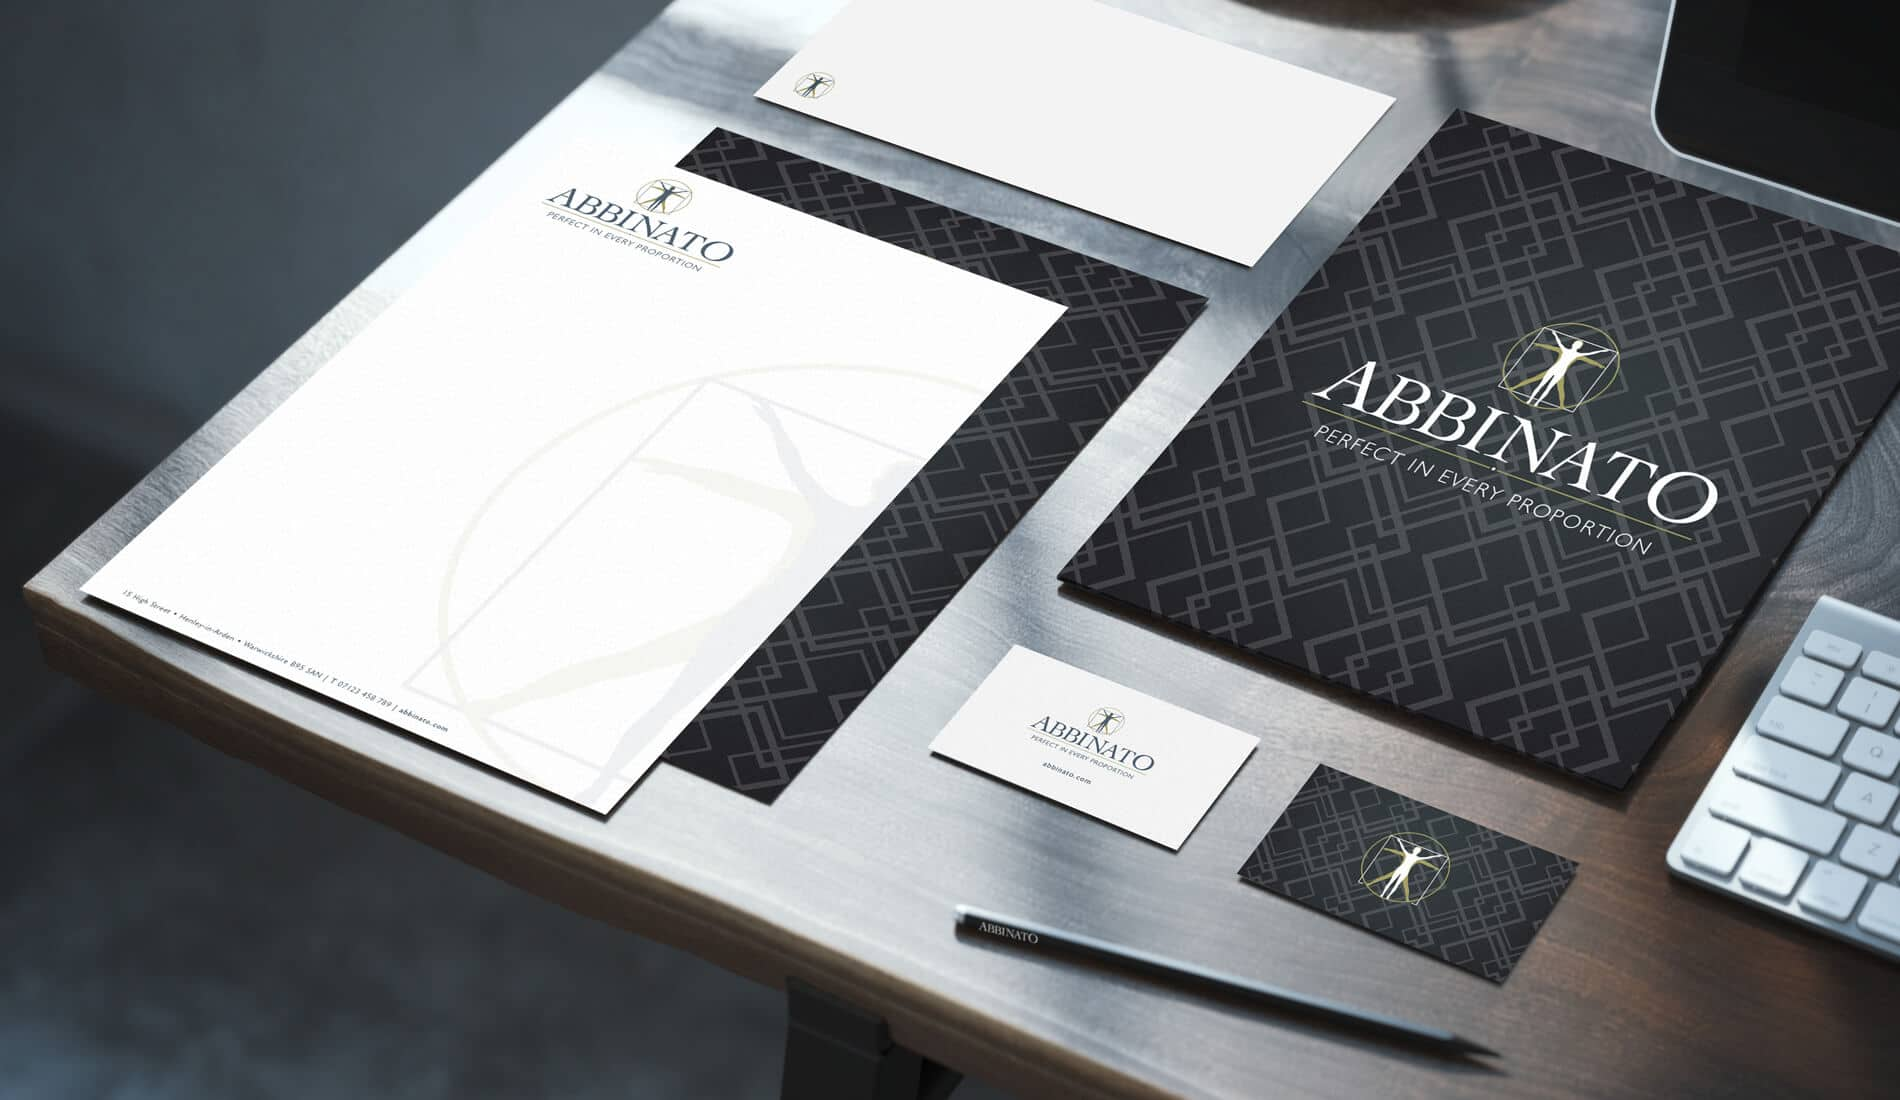 Abbinato branding and identity mocked up on stationary